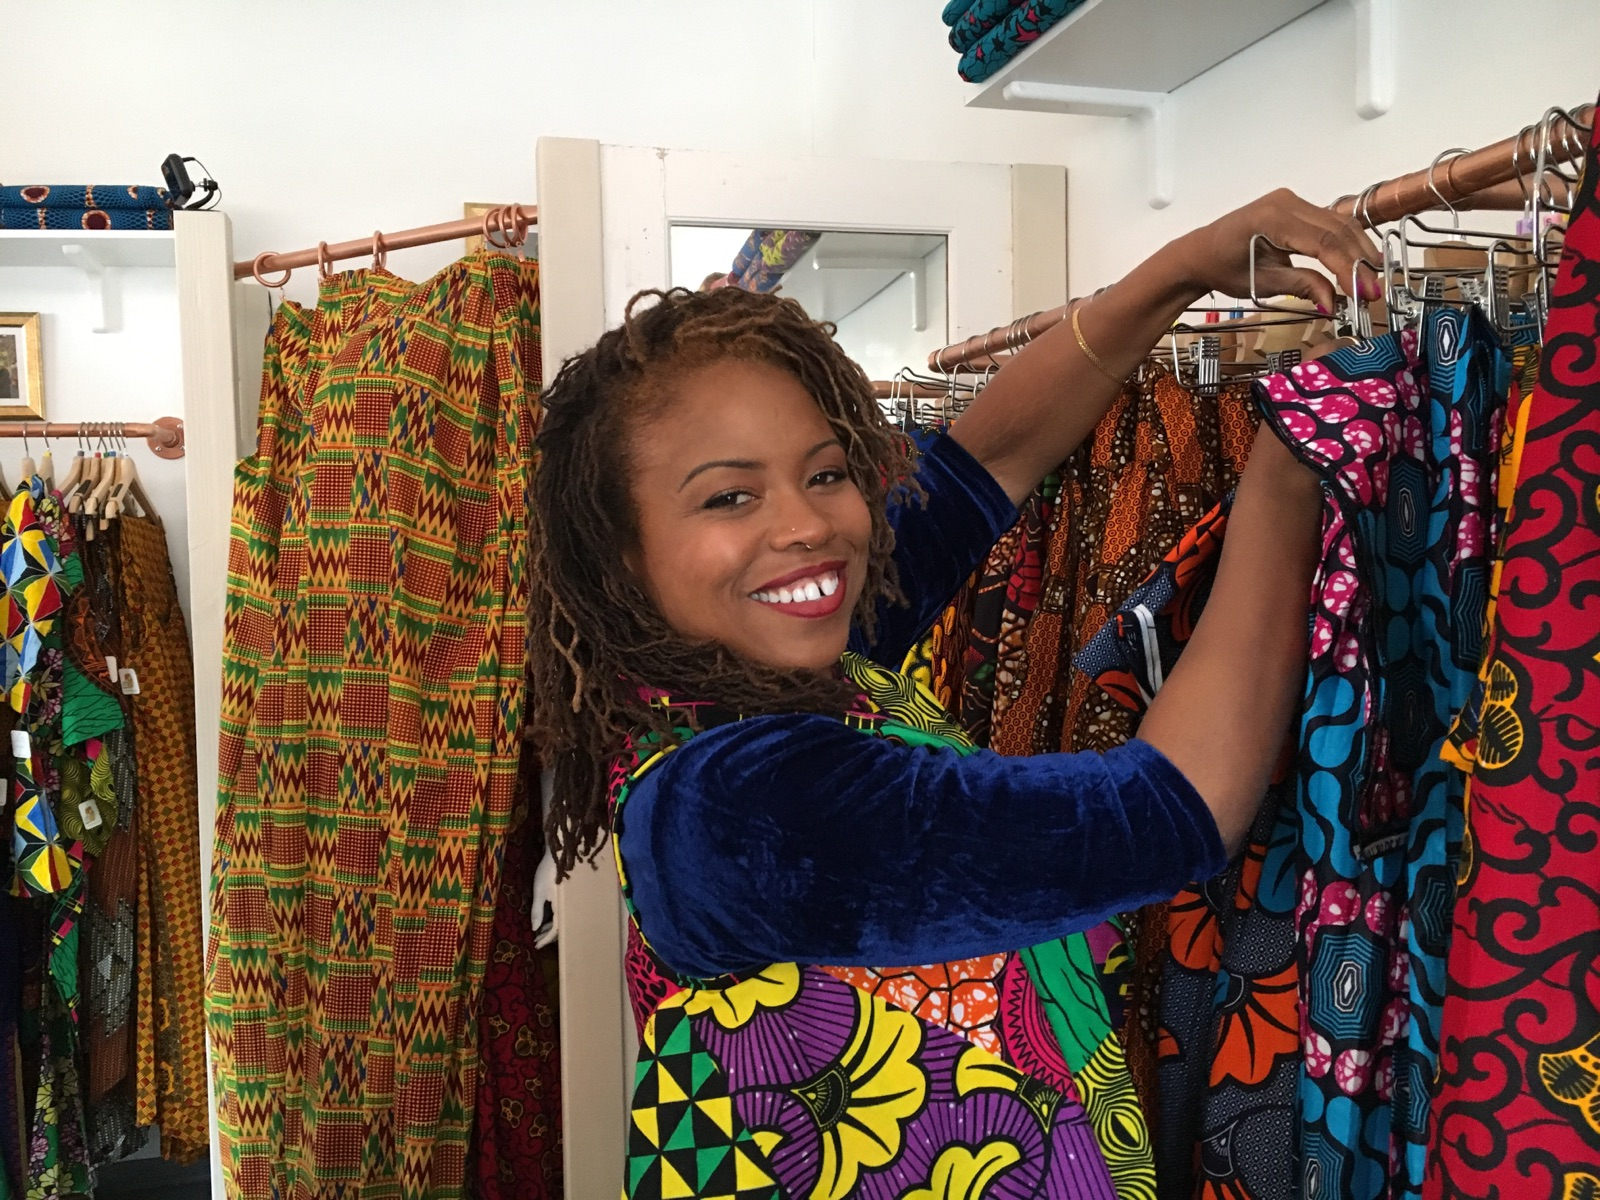 de2a4aedd4 Lola's African Apparel: 'I wanted to share Africa with people through  clothes' — Berkeleyside